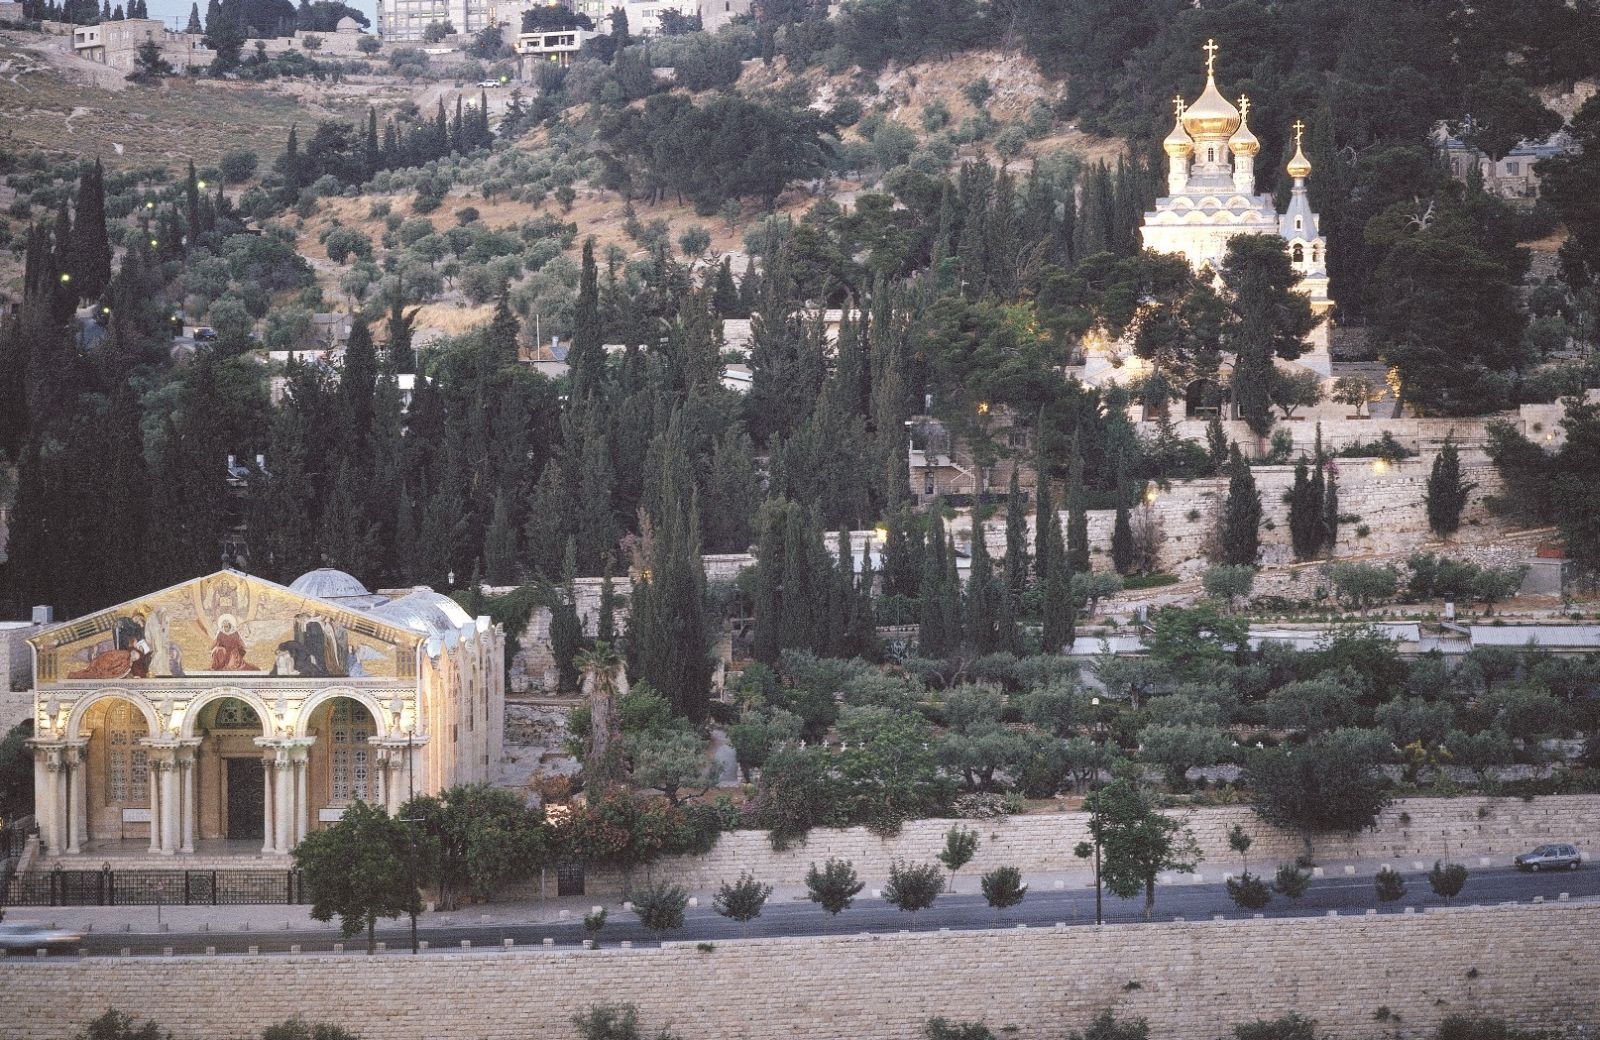 The Church of All Nations (Catholic), left, and Church of Mary Magdalene (Russian), right, on the Mount of Olives. Photo courtesy of Israel Tourism Ministry